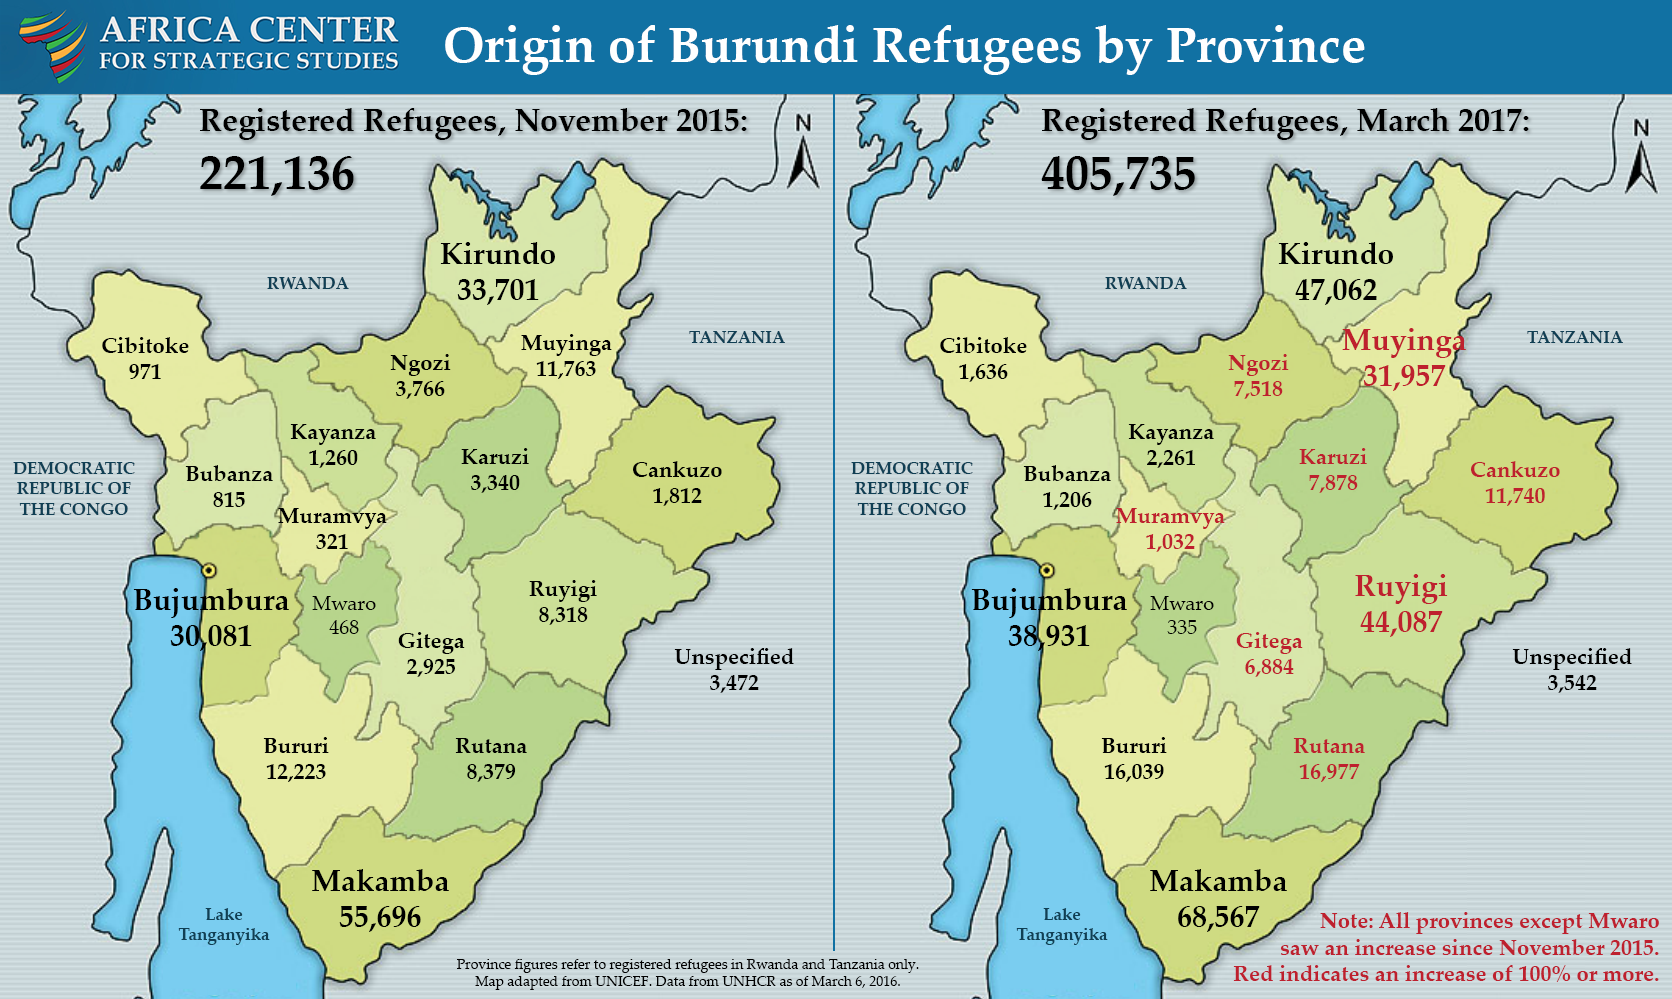 Origin of refugees by province since the beginning of the Burundi crisis